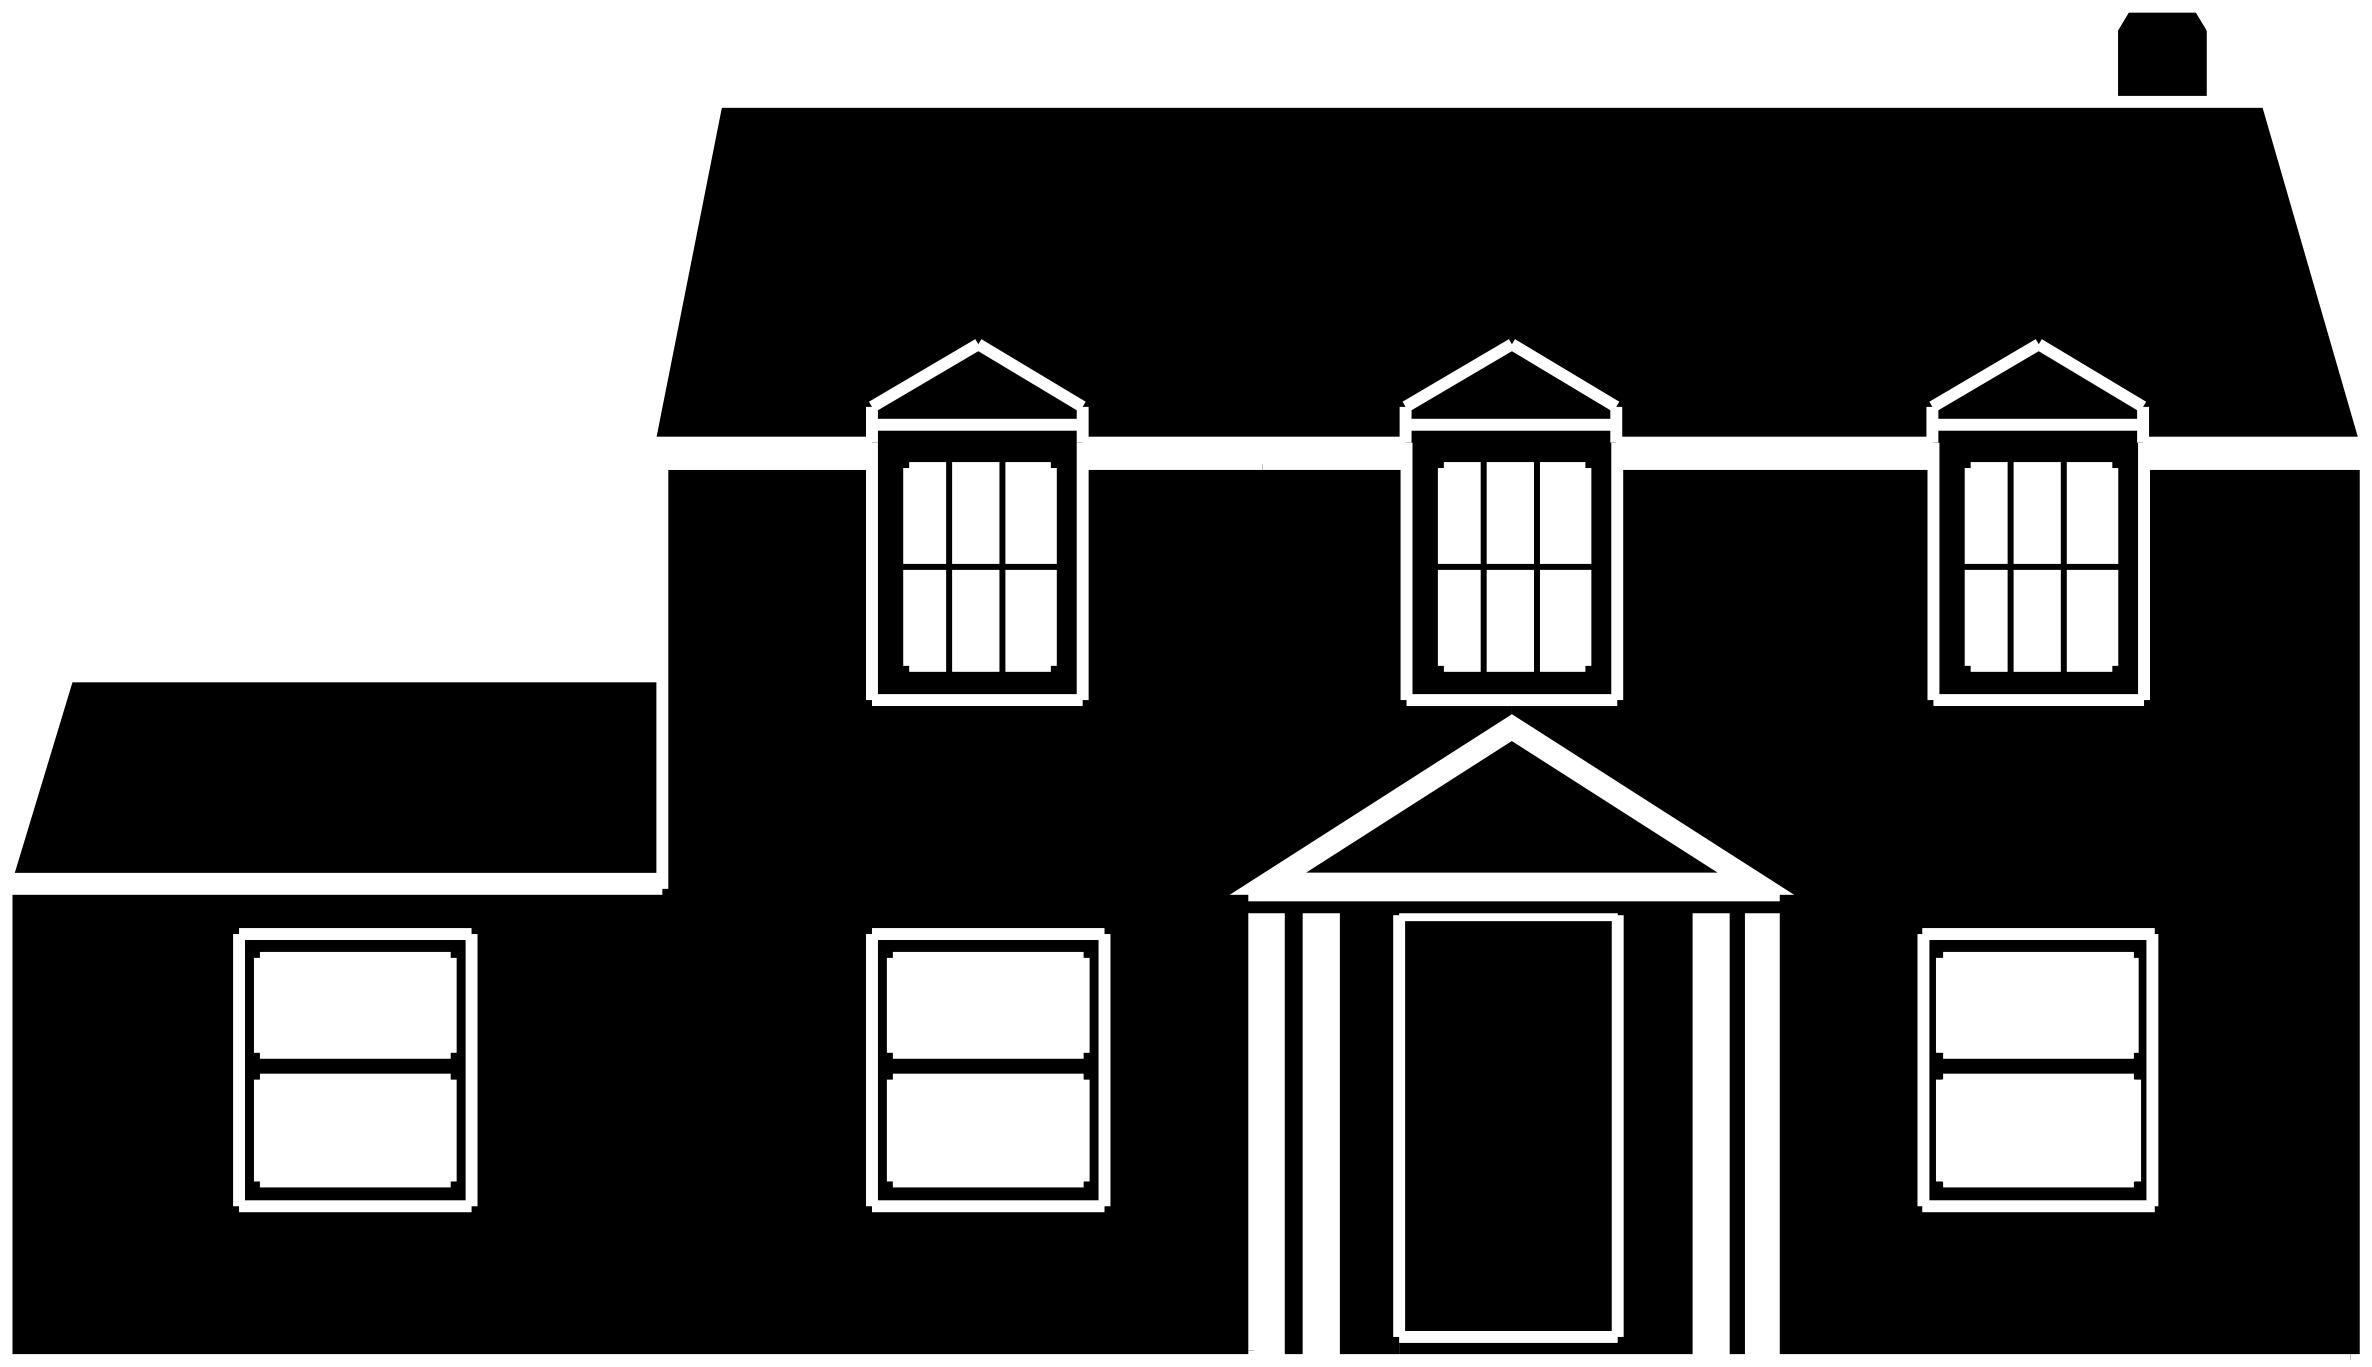 Home Clipart Black And White Png.